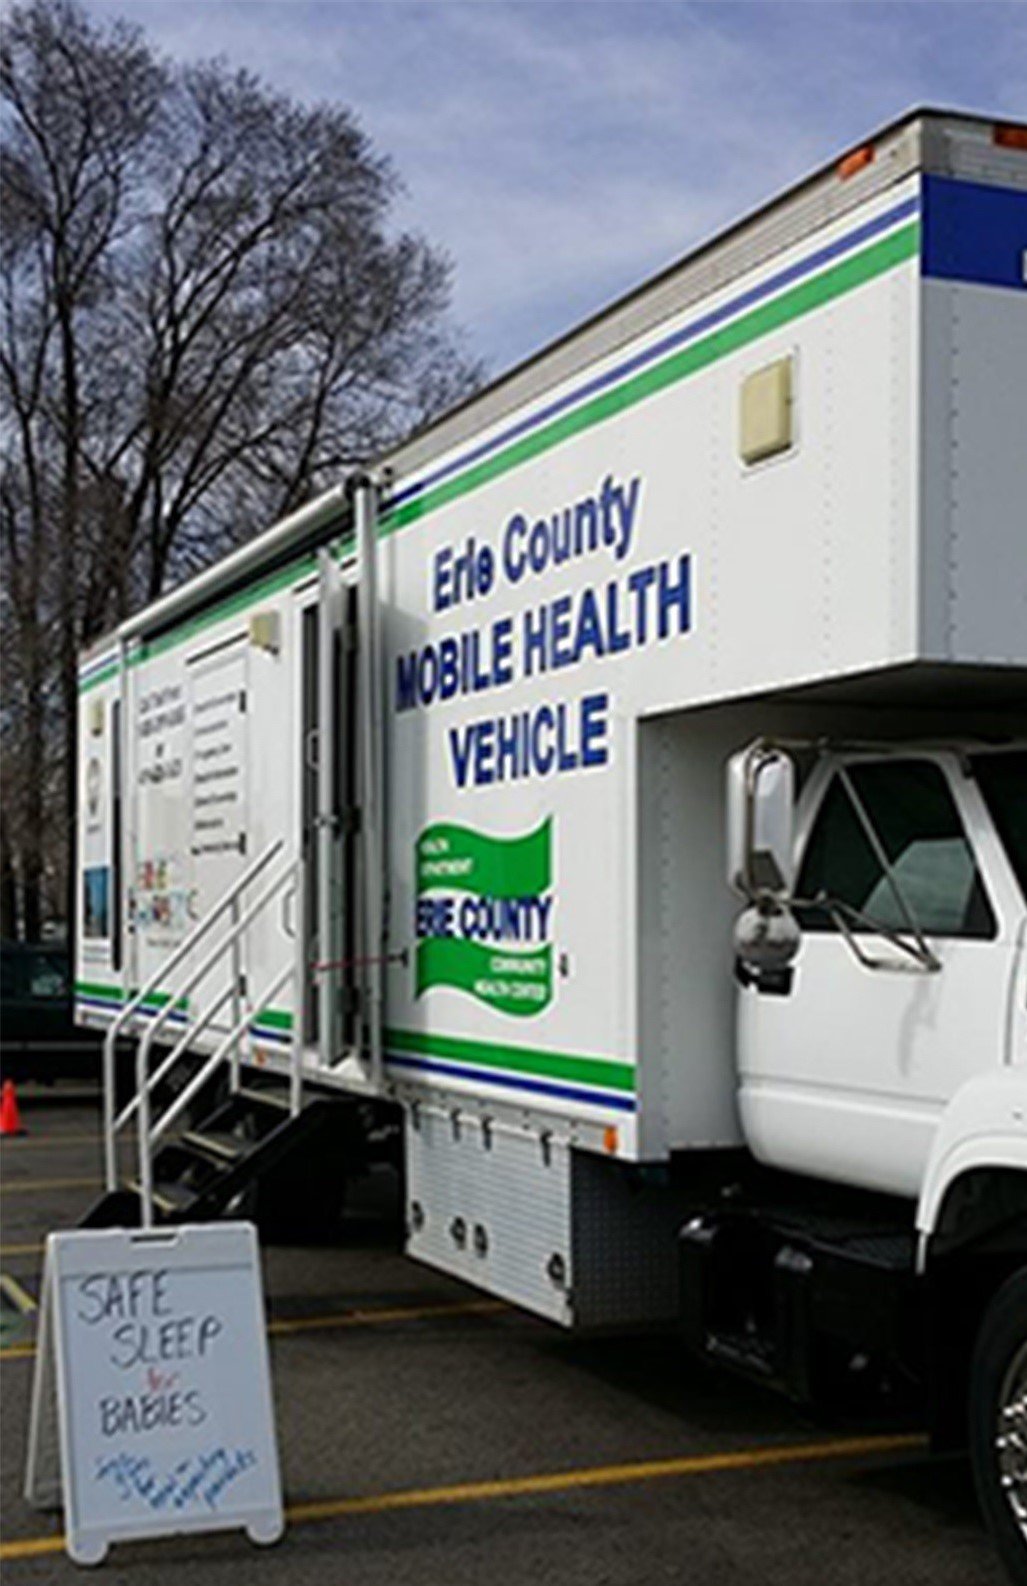 Erie County Mobile Health unit, part of their outreach services (Sandusky, OH)